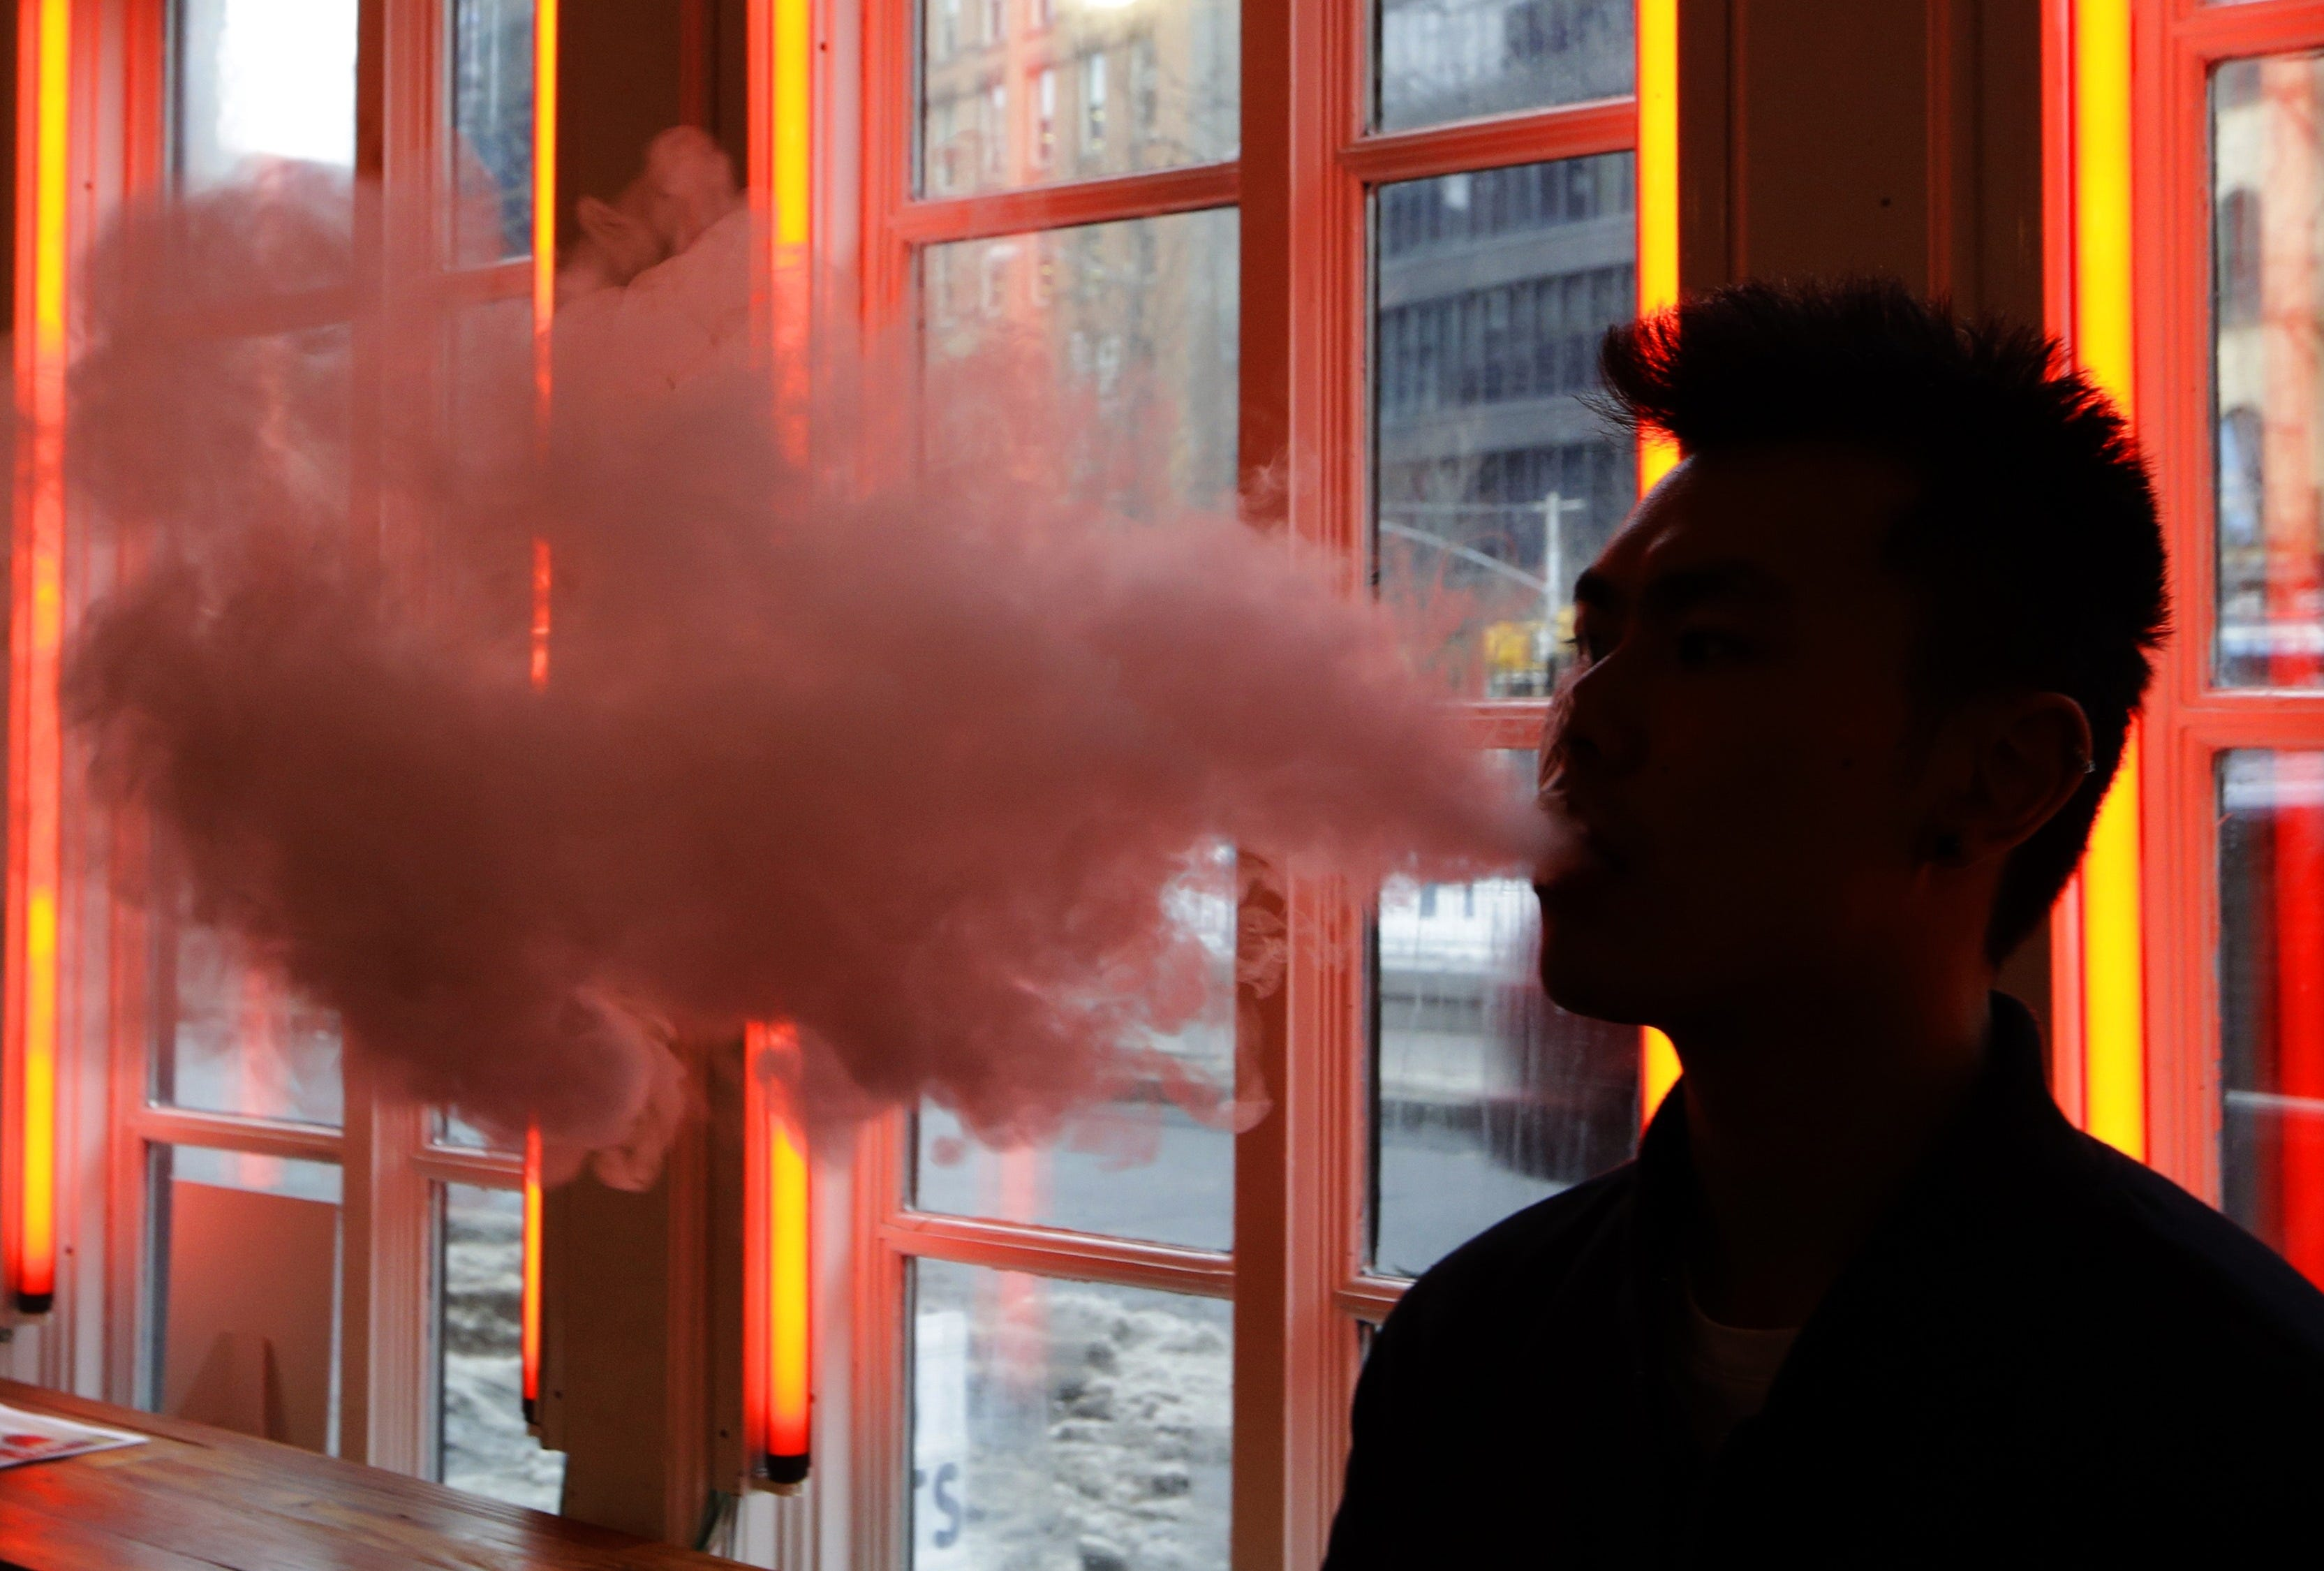 San Francisco approves historic ban of e-cigarette sales, a first for a major US city